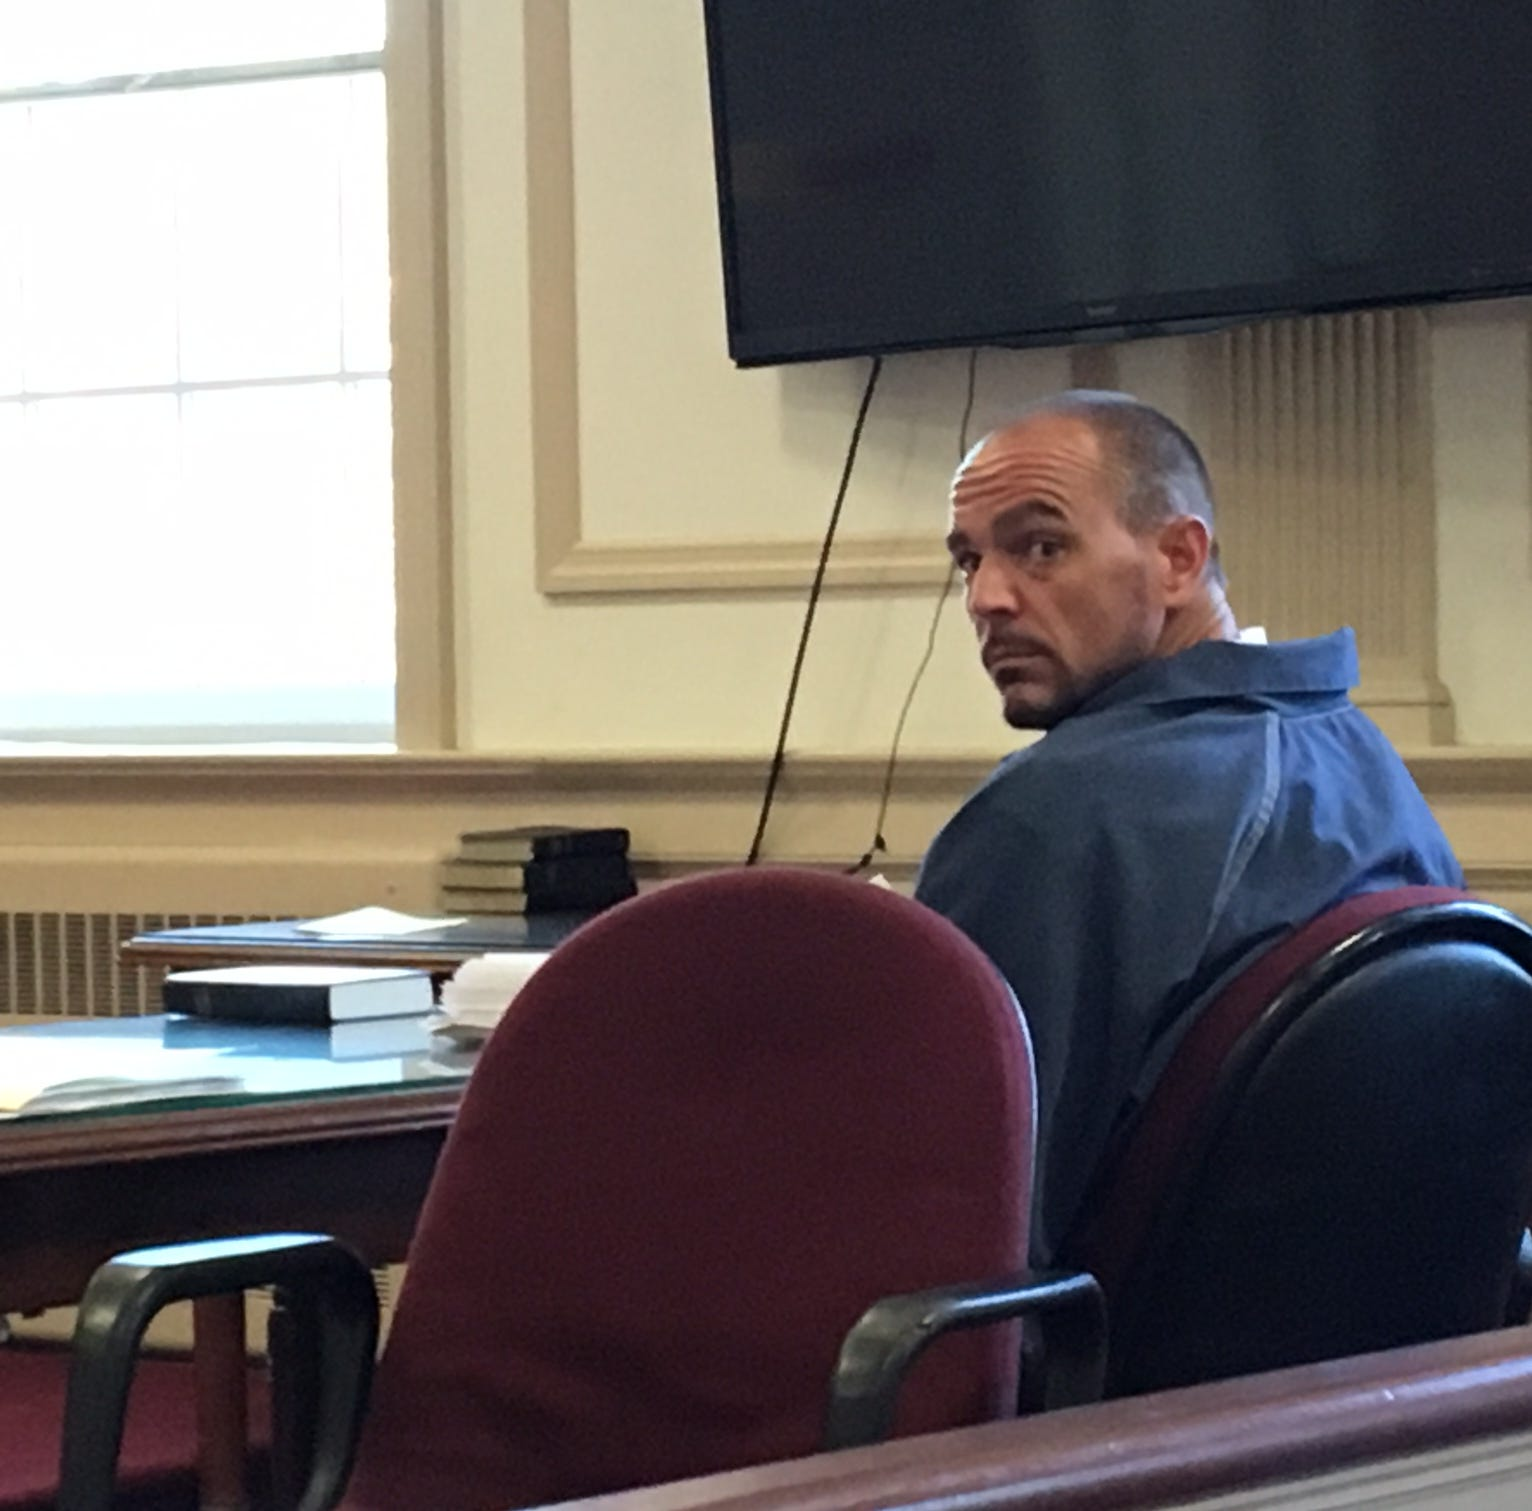 Phillipsburg father jailed for alleged threat to kill judge, court employee